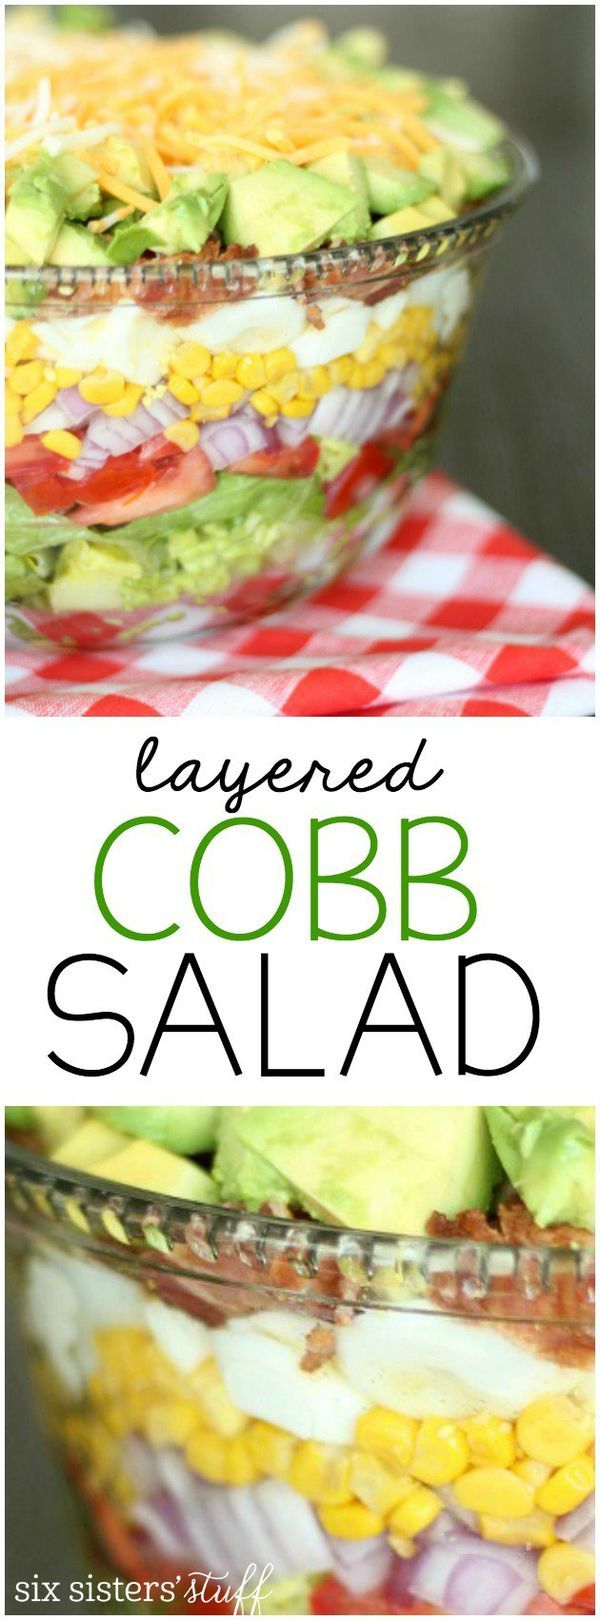 Delicious Layered Cobb Salad from SixSistersStuff.com. Perfect for parties and barbecues!